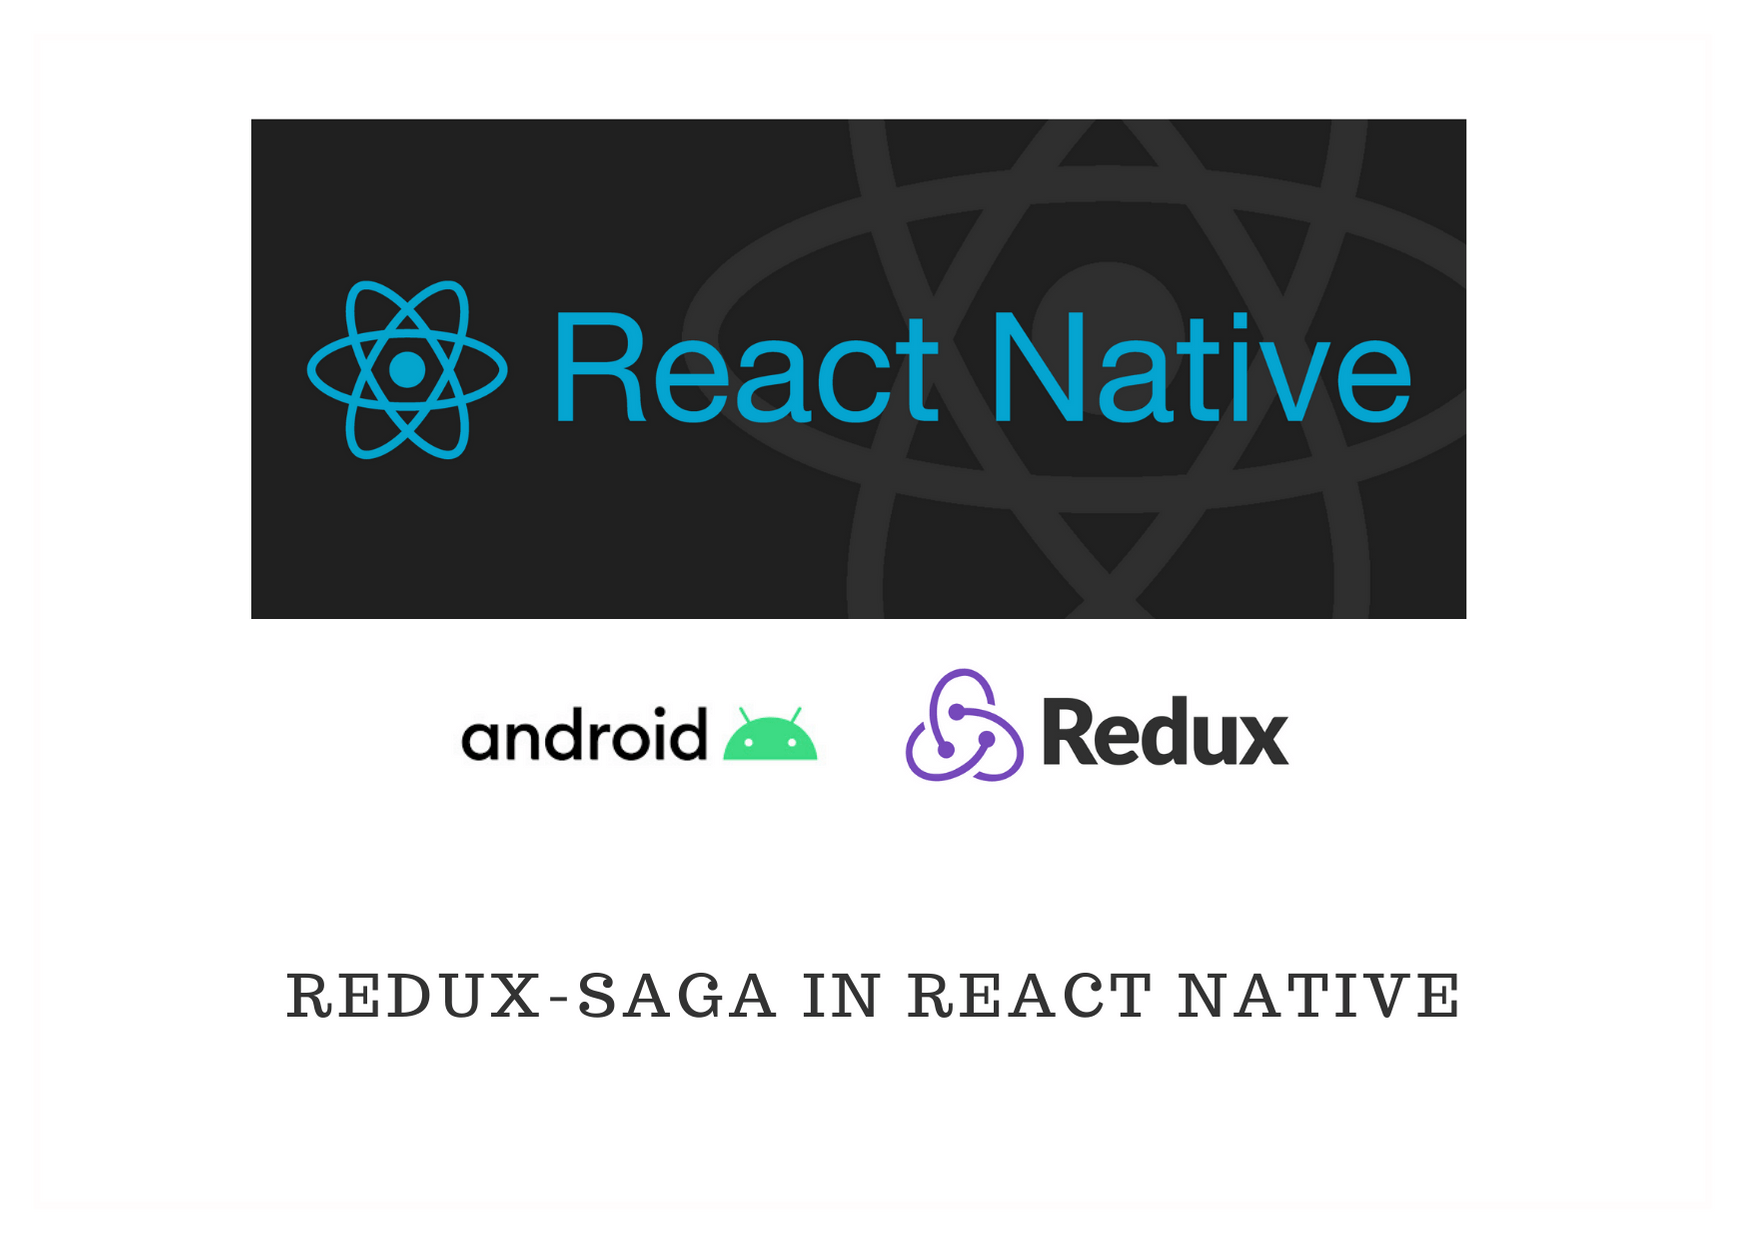 react native with redux saga